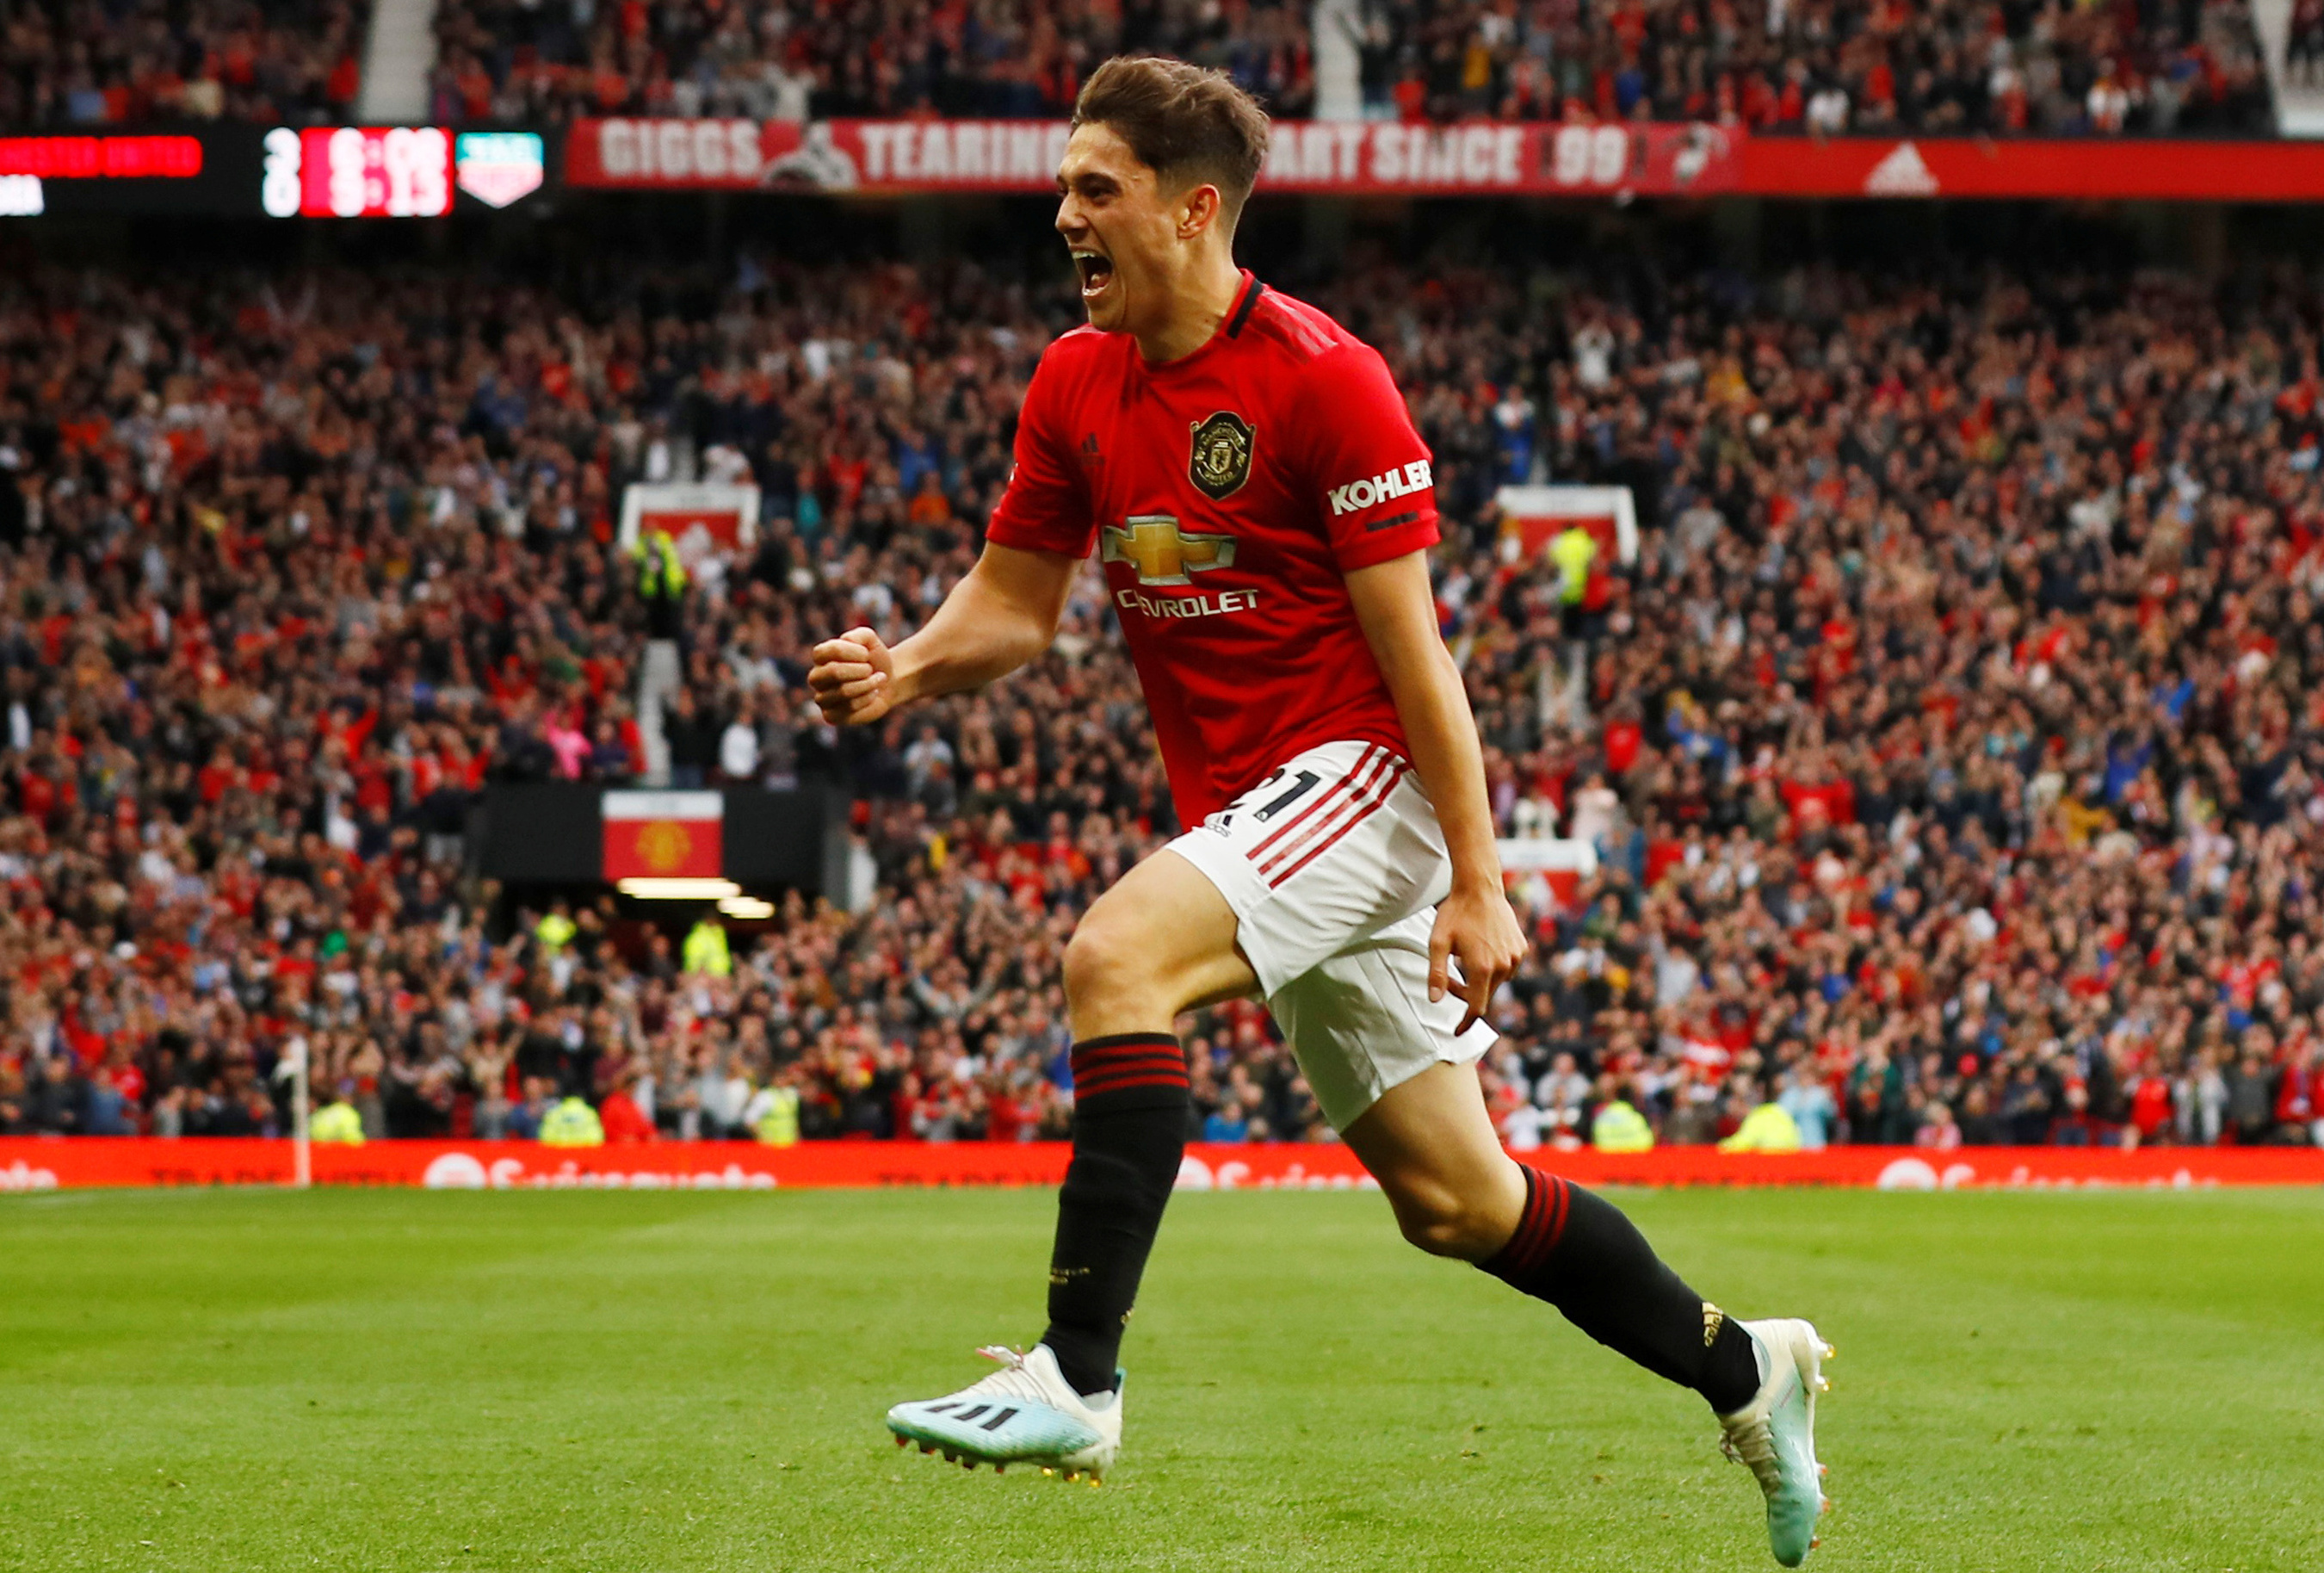 James aims to follow Solskjaer with Old Trafford treble